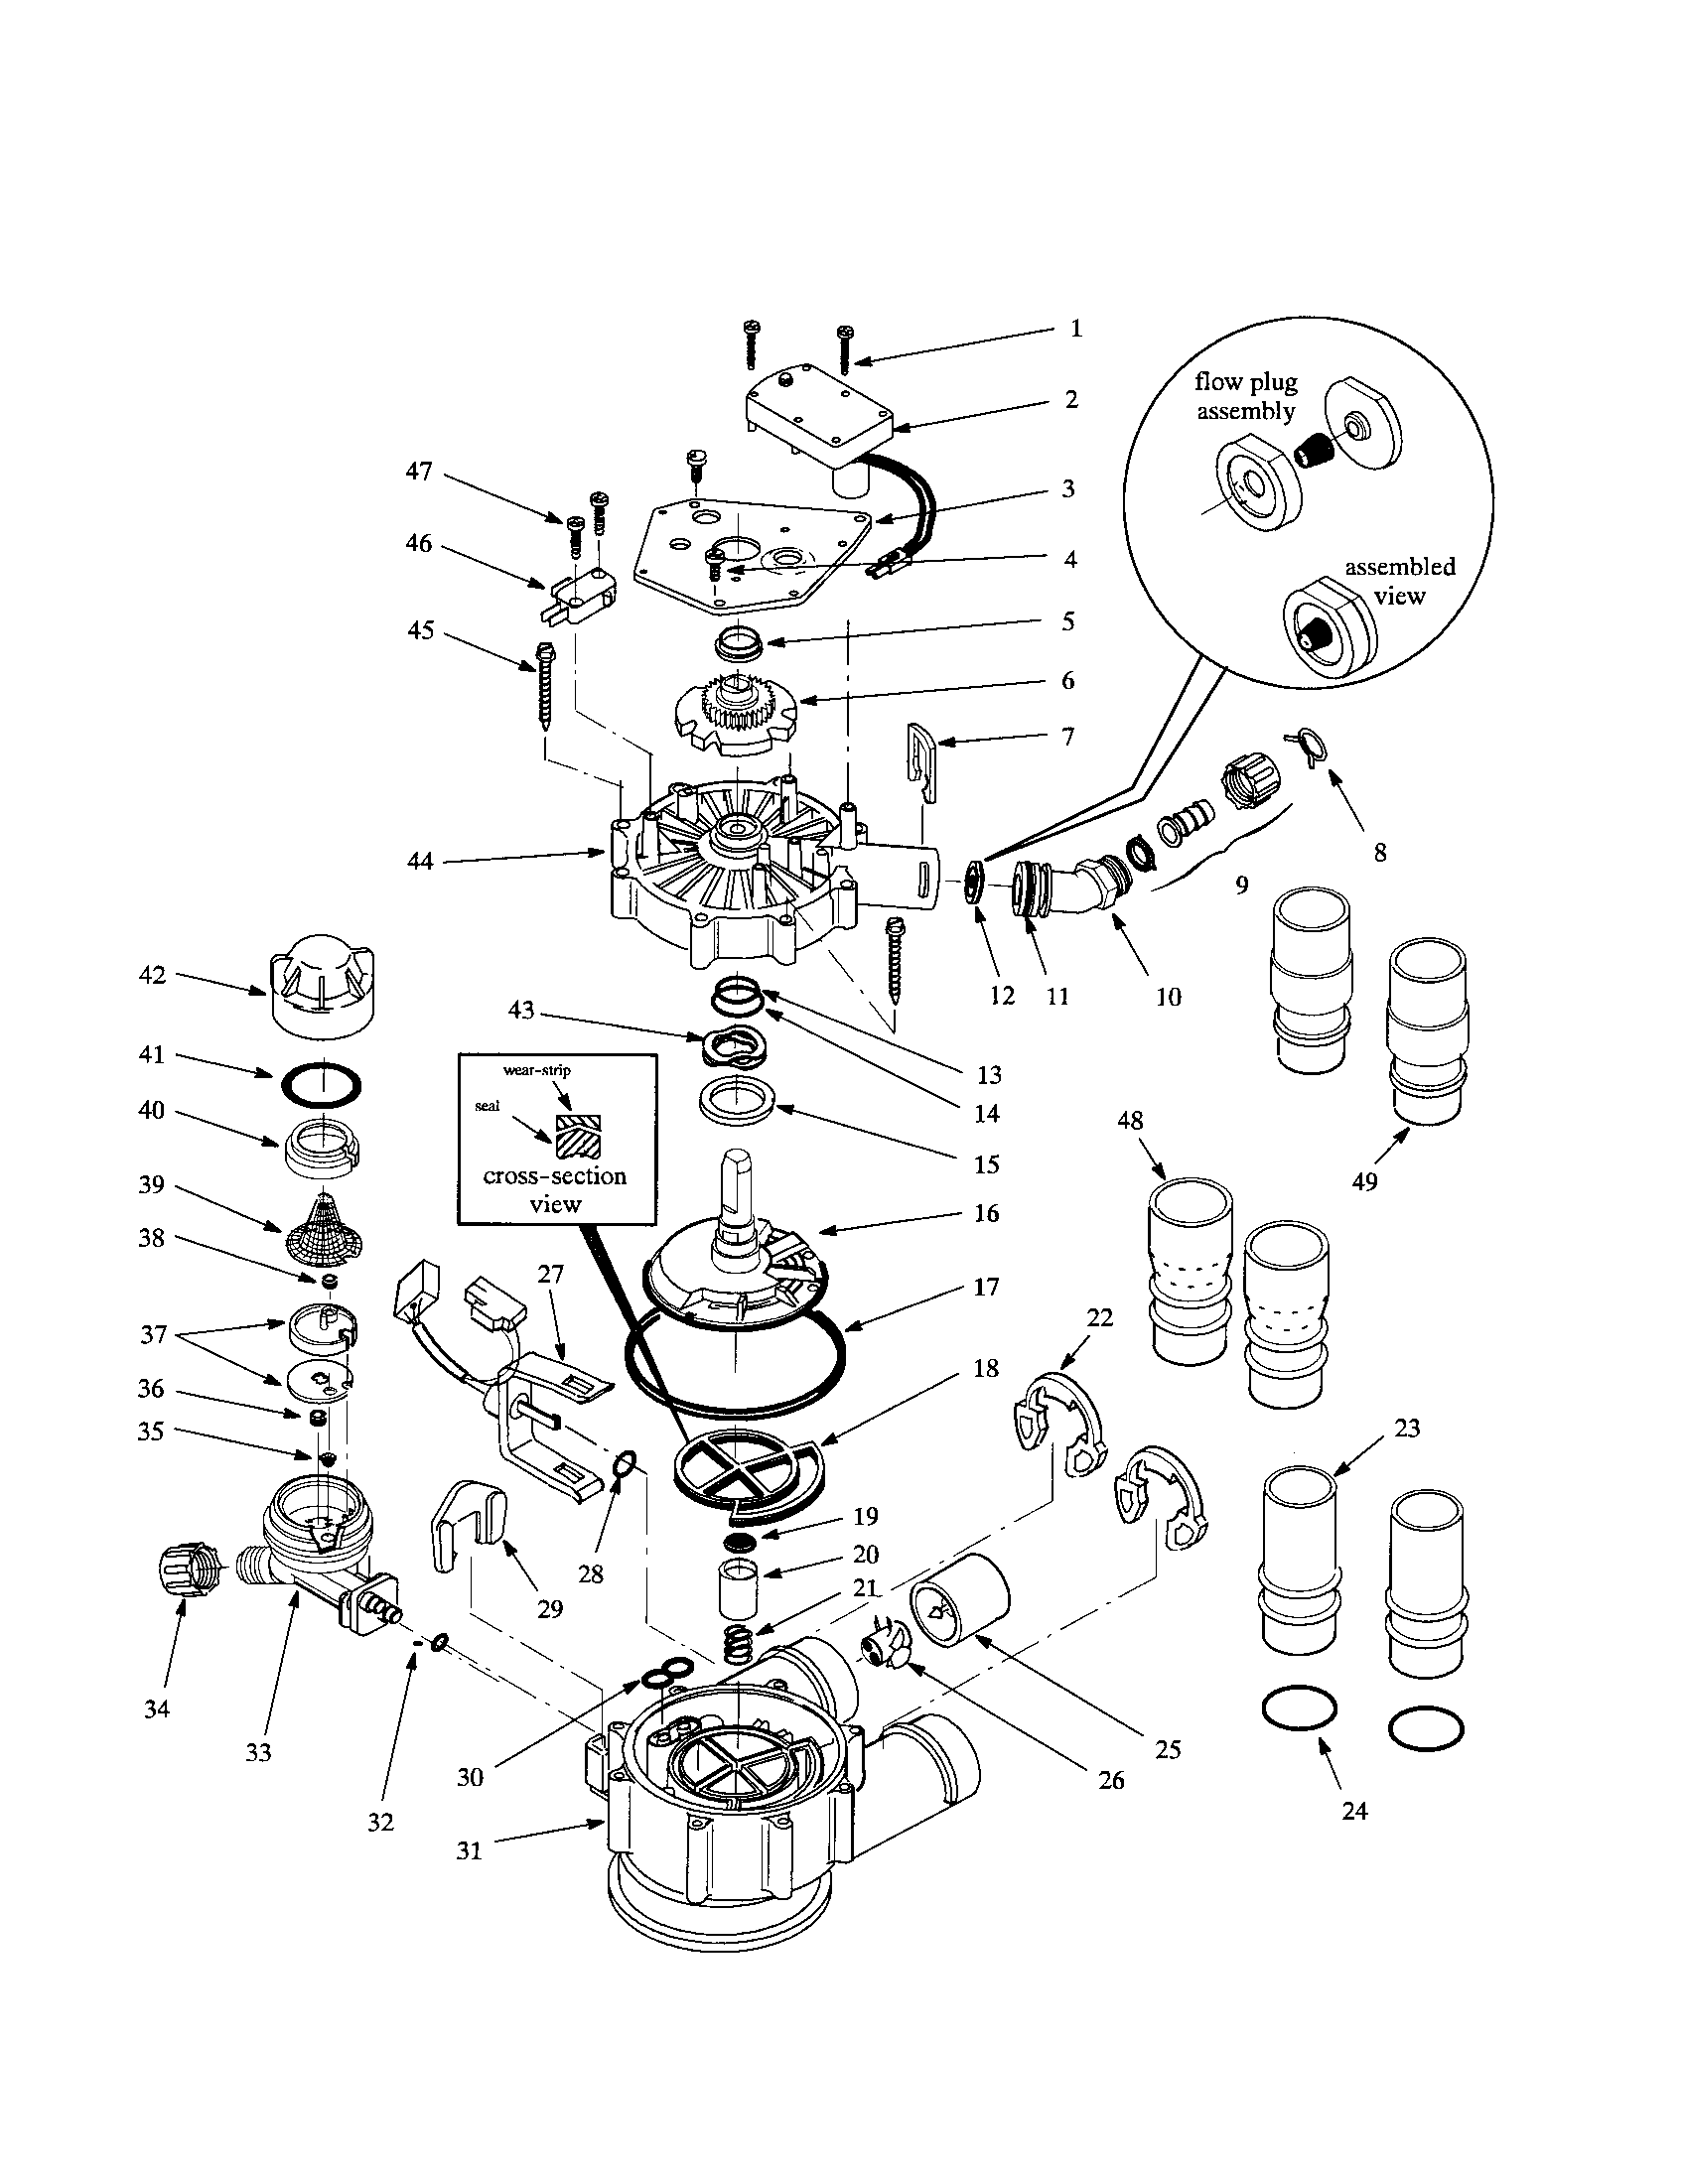 hight resolution of whirlpool whes40 motor tubing valve cover diagram